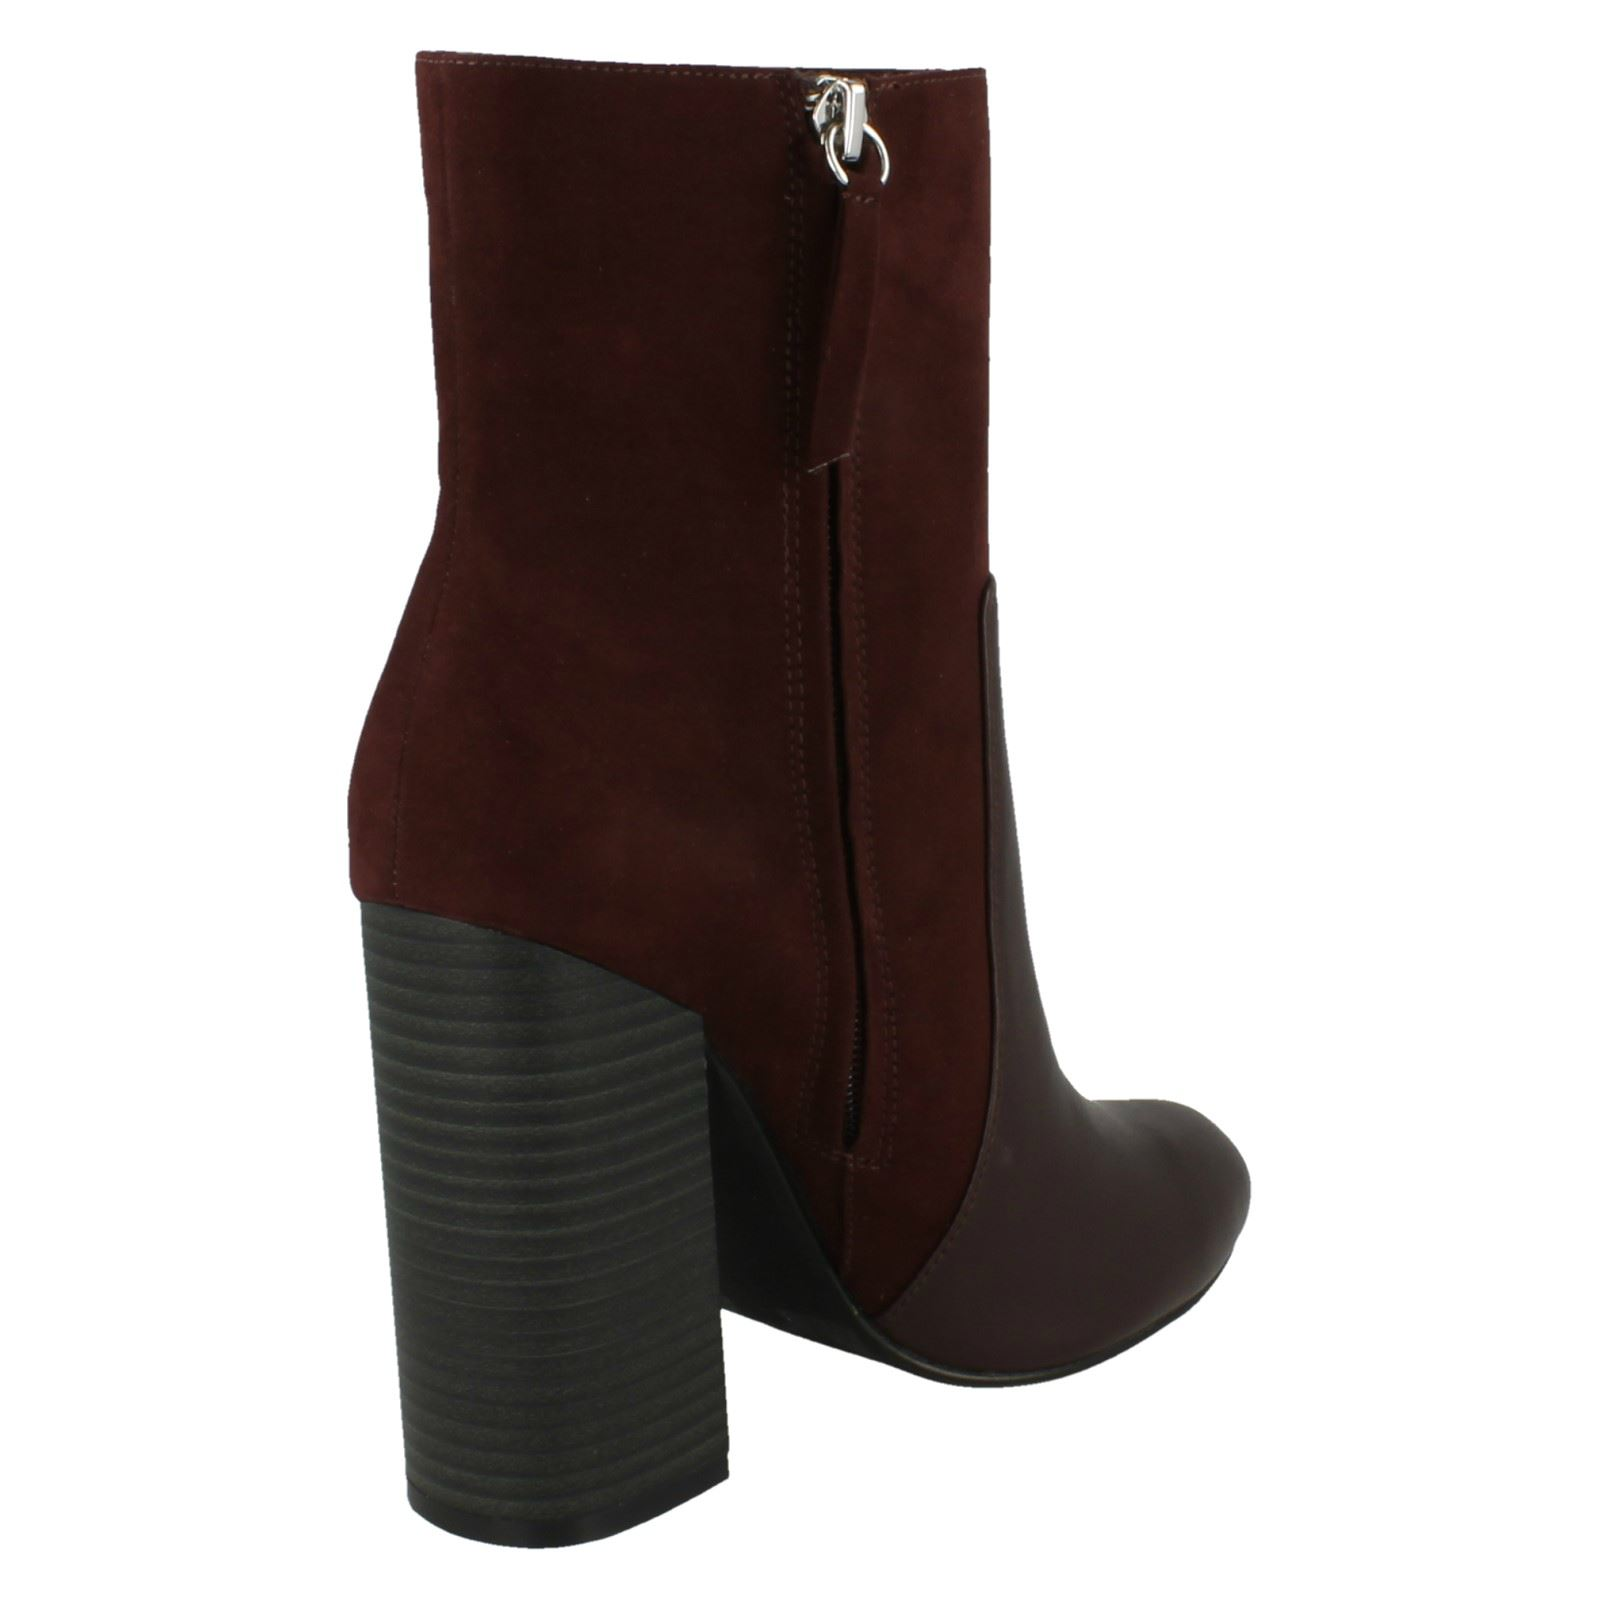 Ladies SALE Anne Michelle F50373 Microfibre Synthetic High Heel Ankle Boots